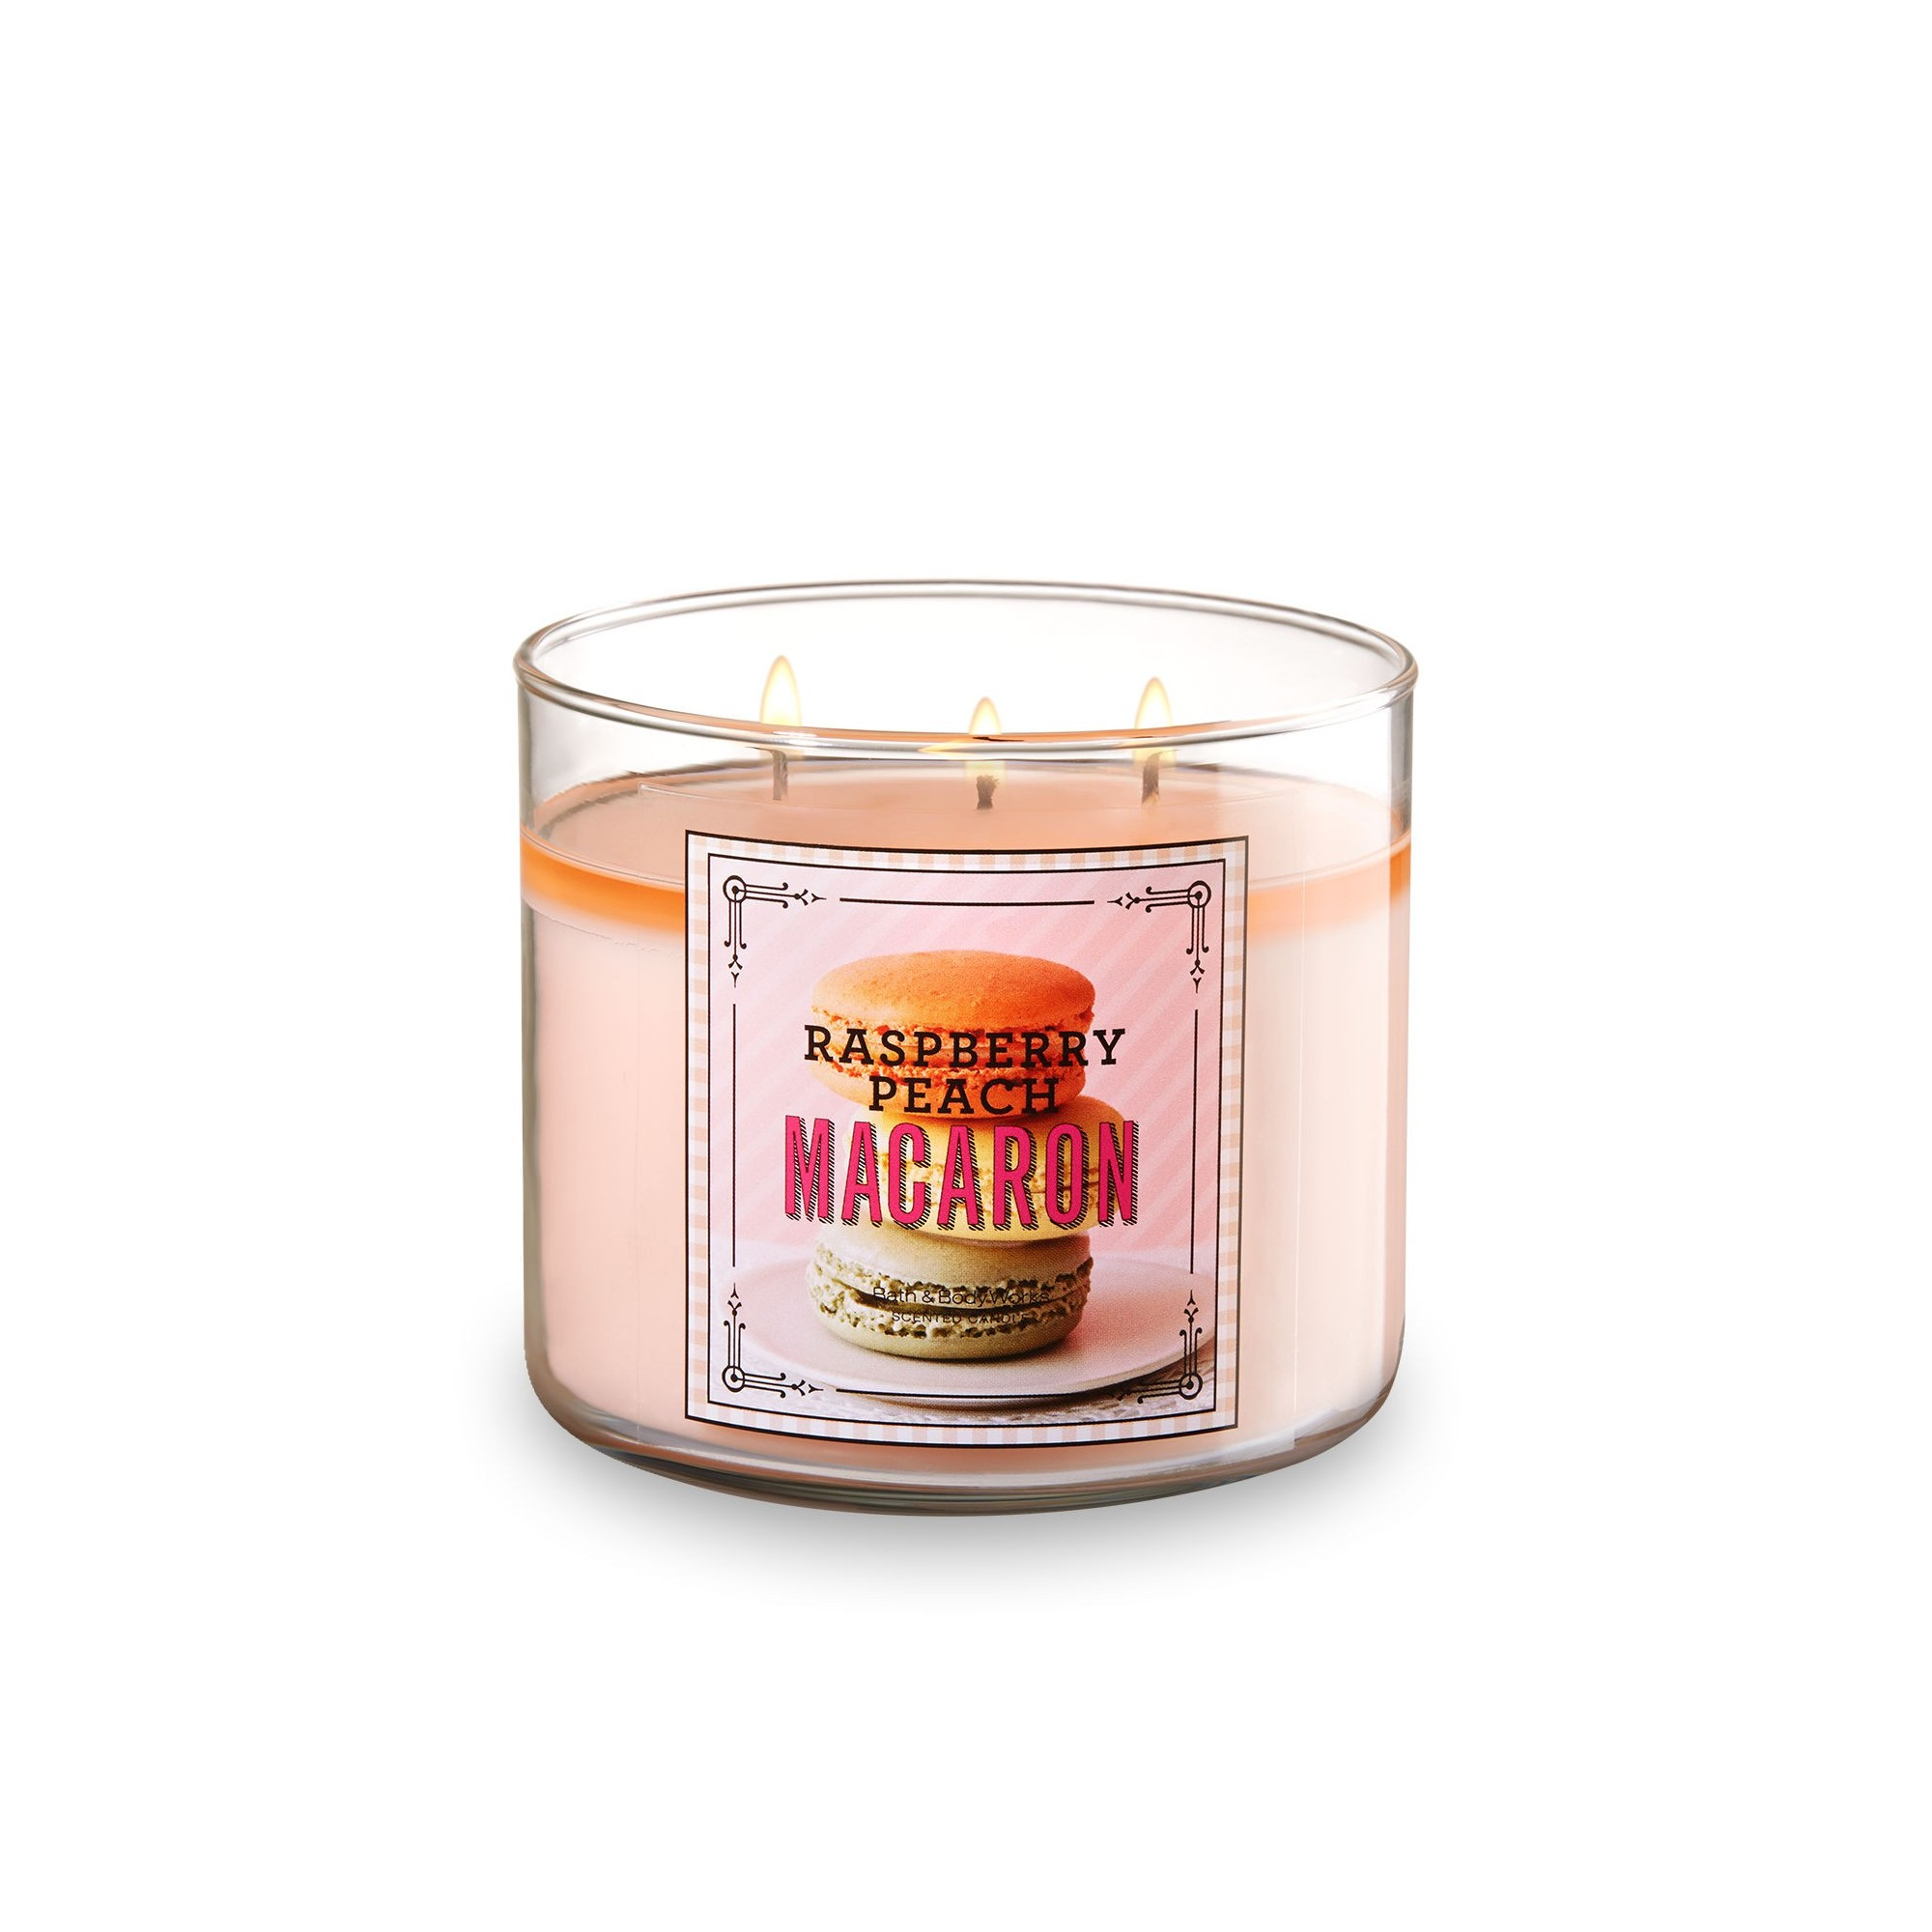 Bath & Body Works Raspberry Peach Macaron 3 Wick Scented Candle